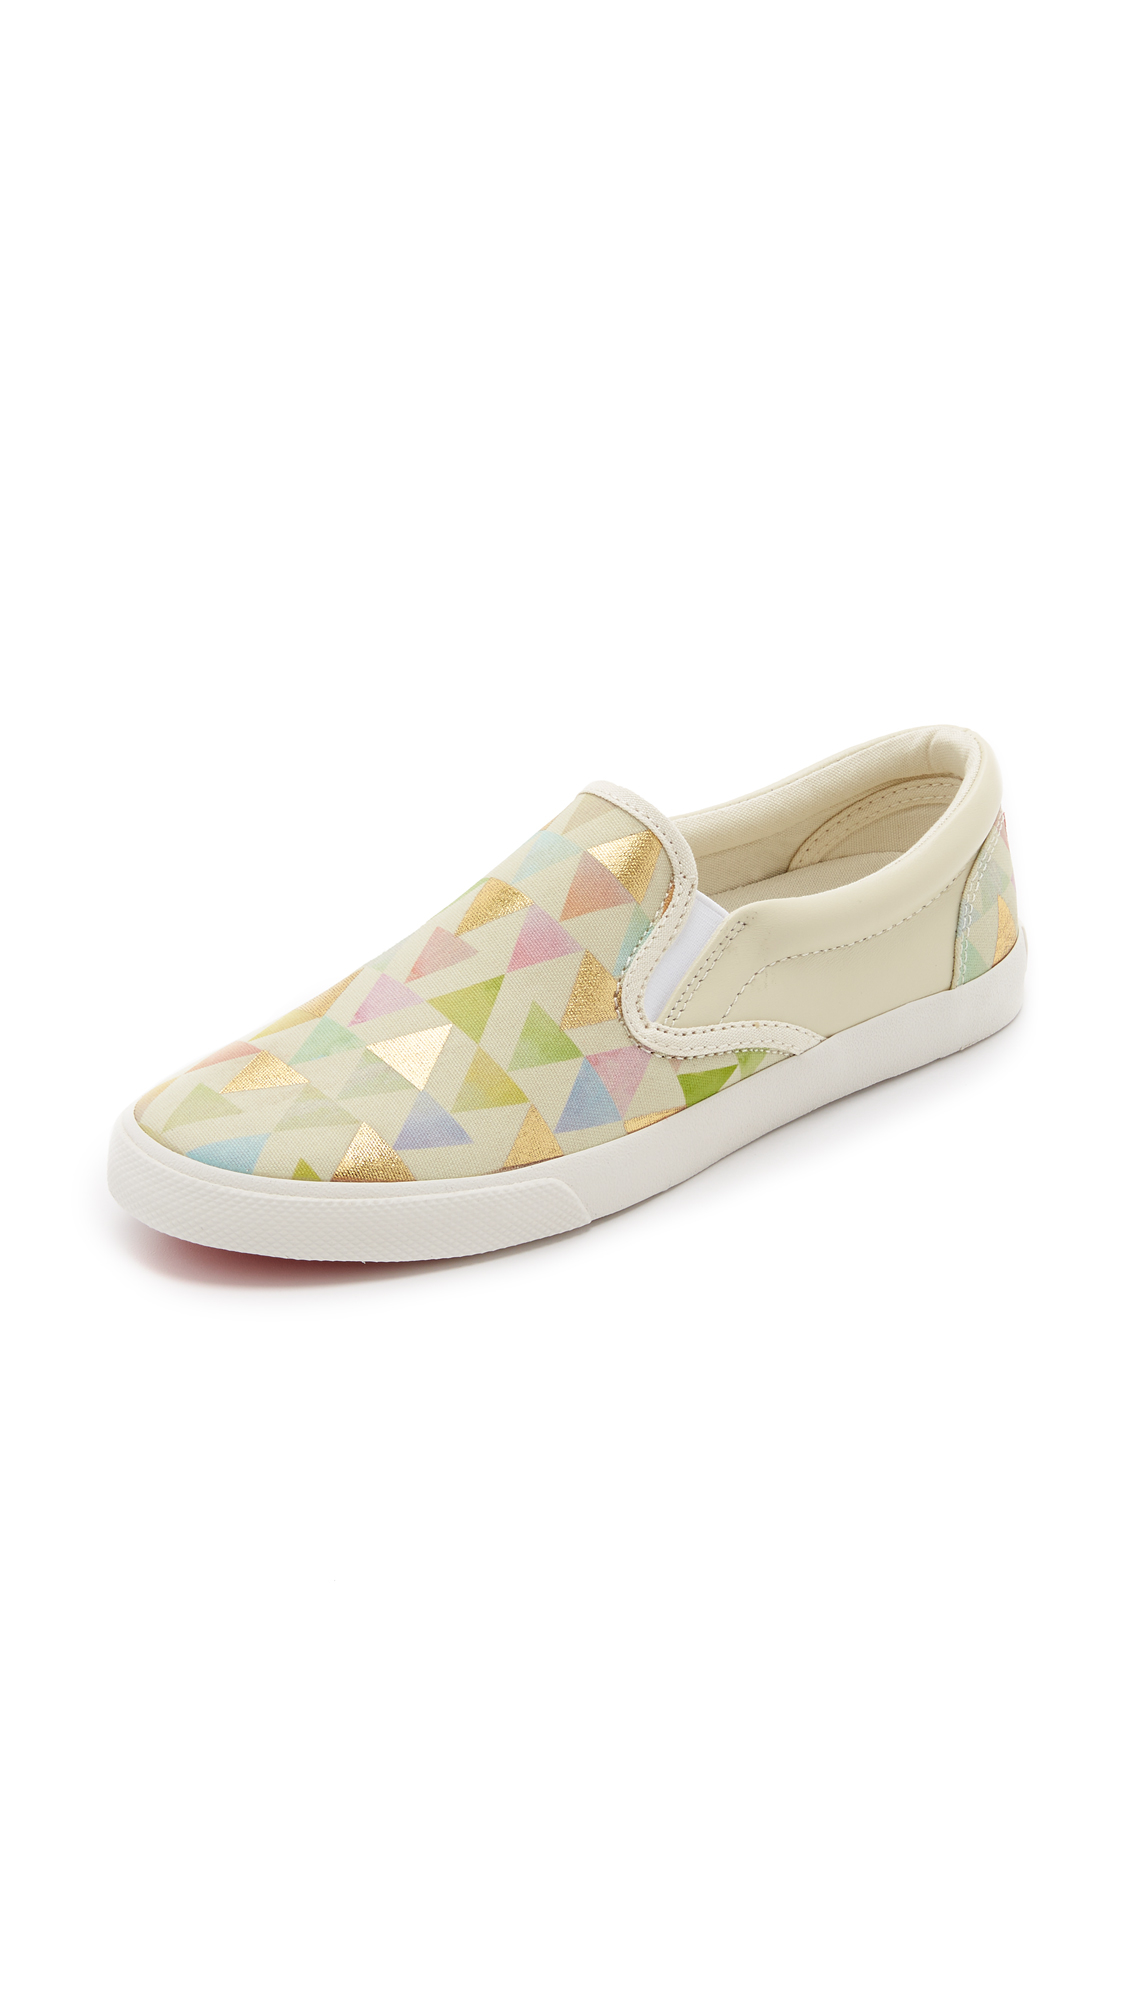 Bucketfeet Leather Girly Things Slip On Sneakers